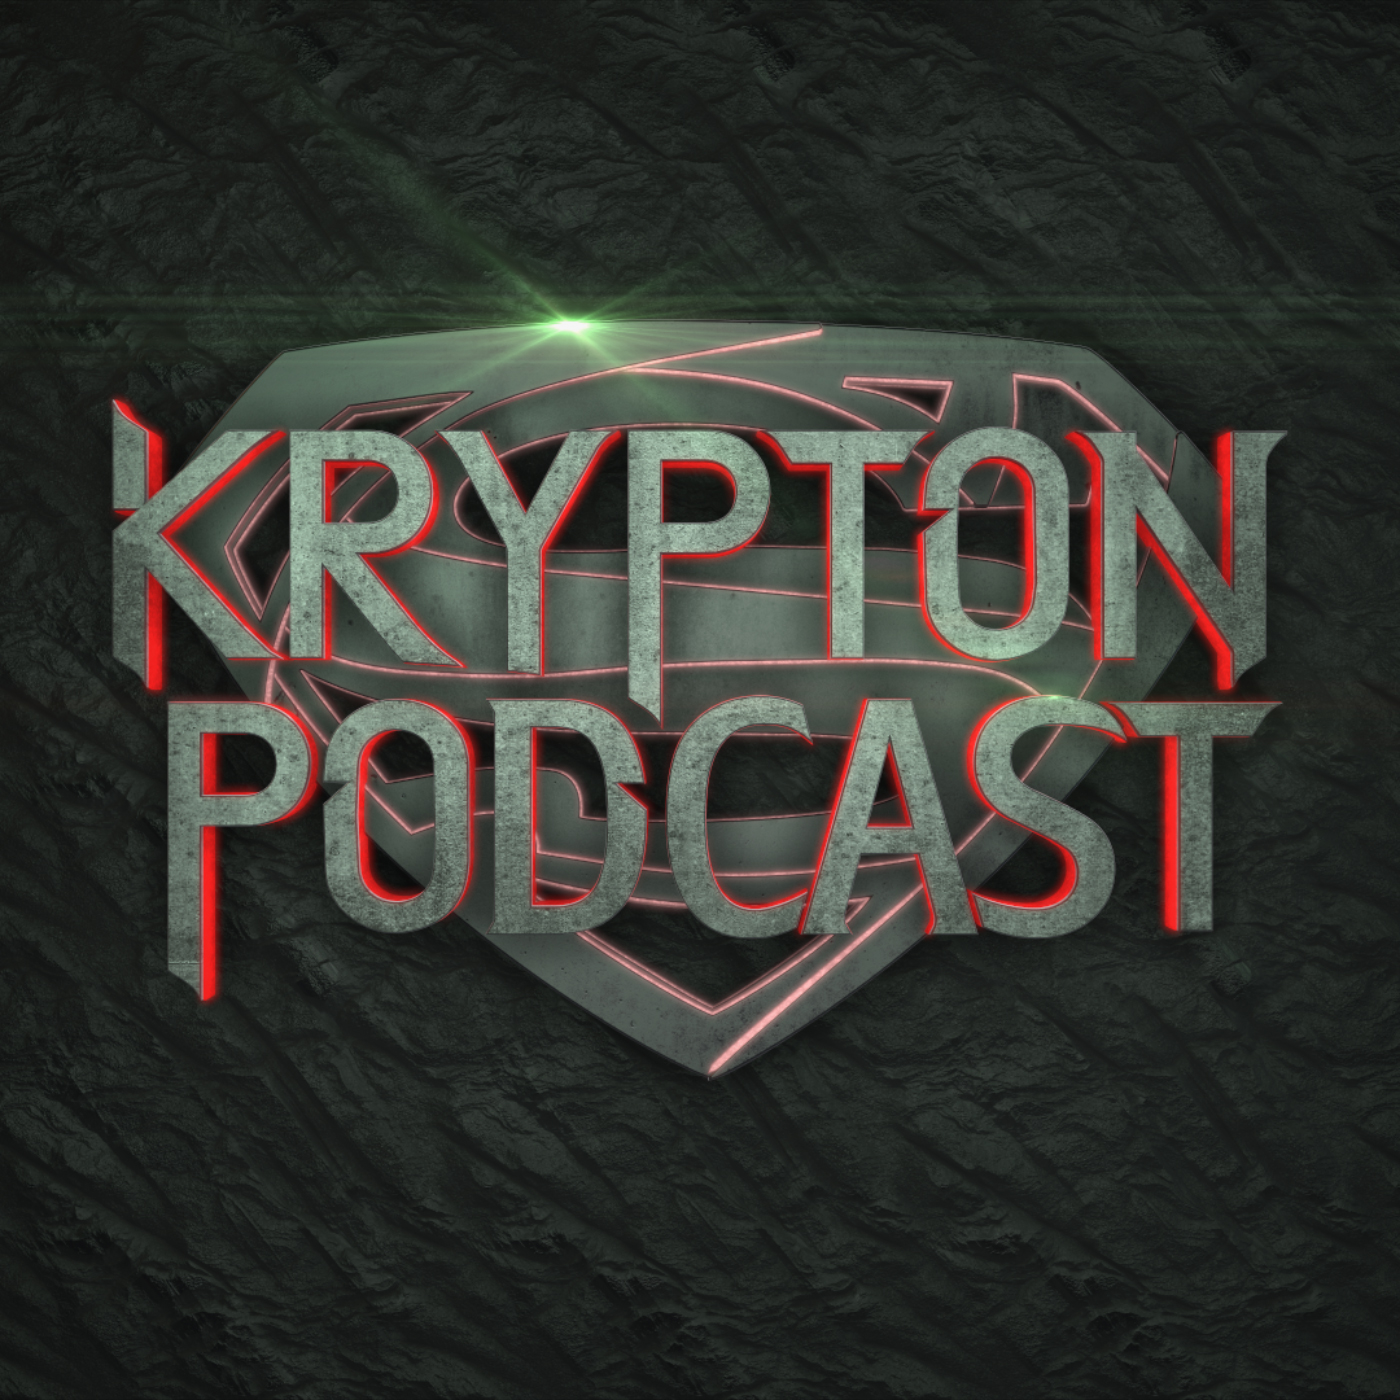 Krypton Podcast